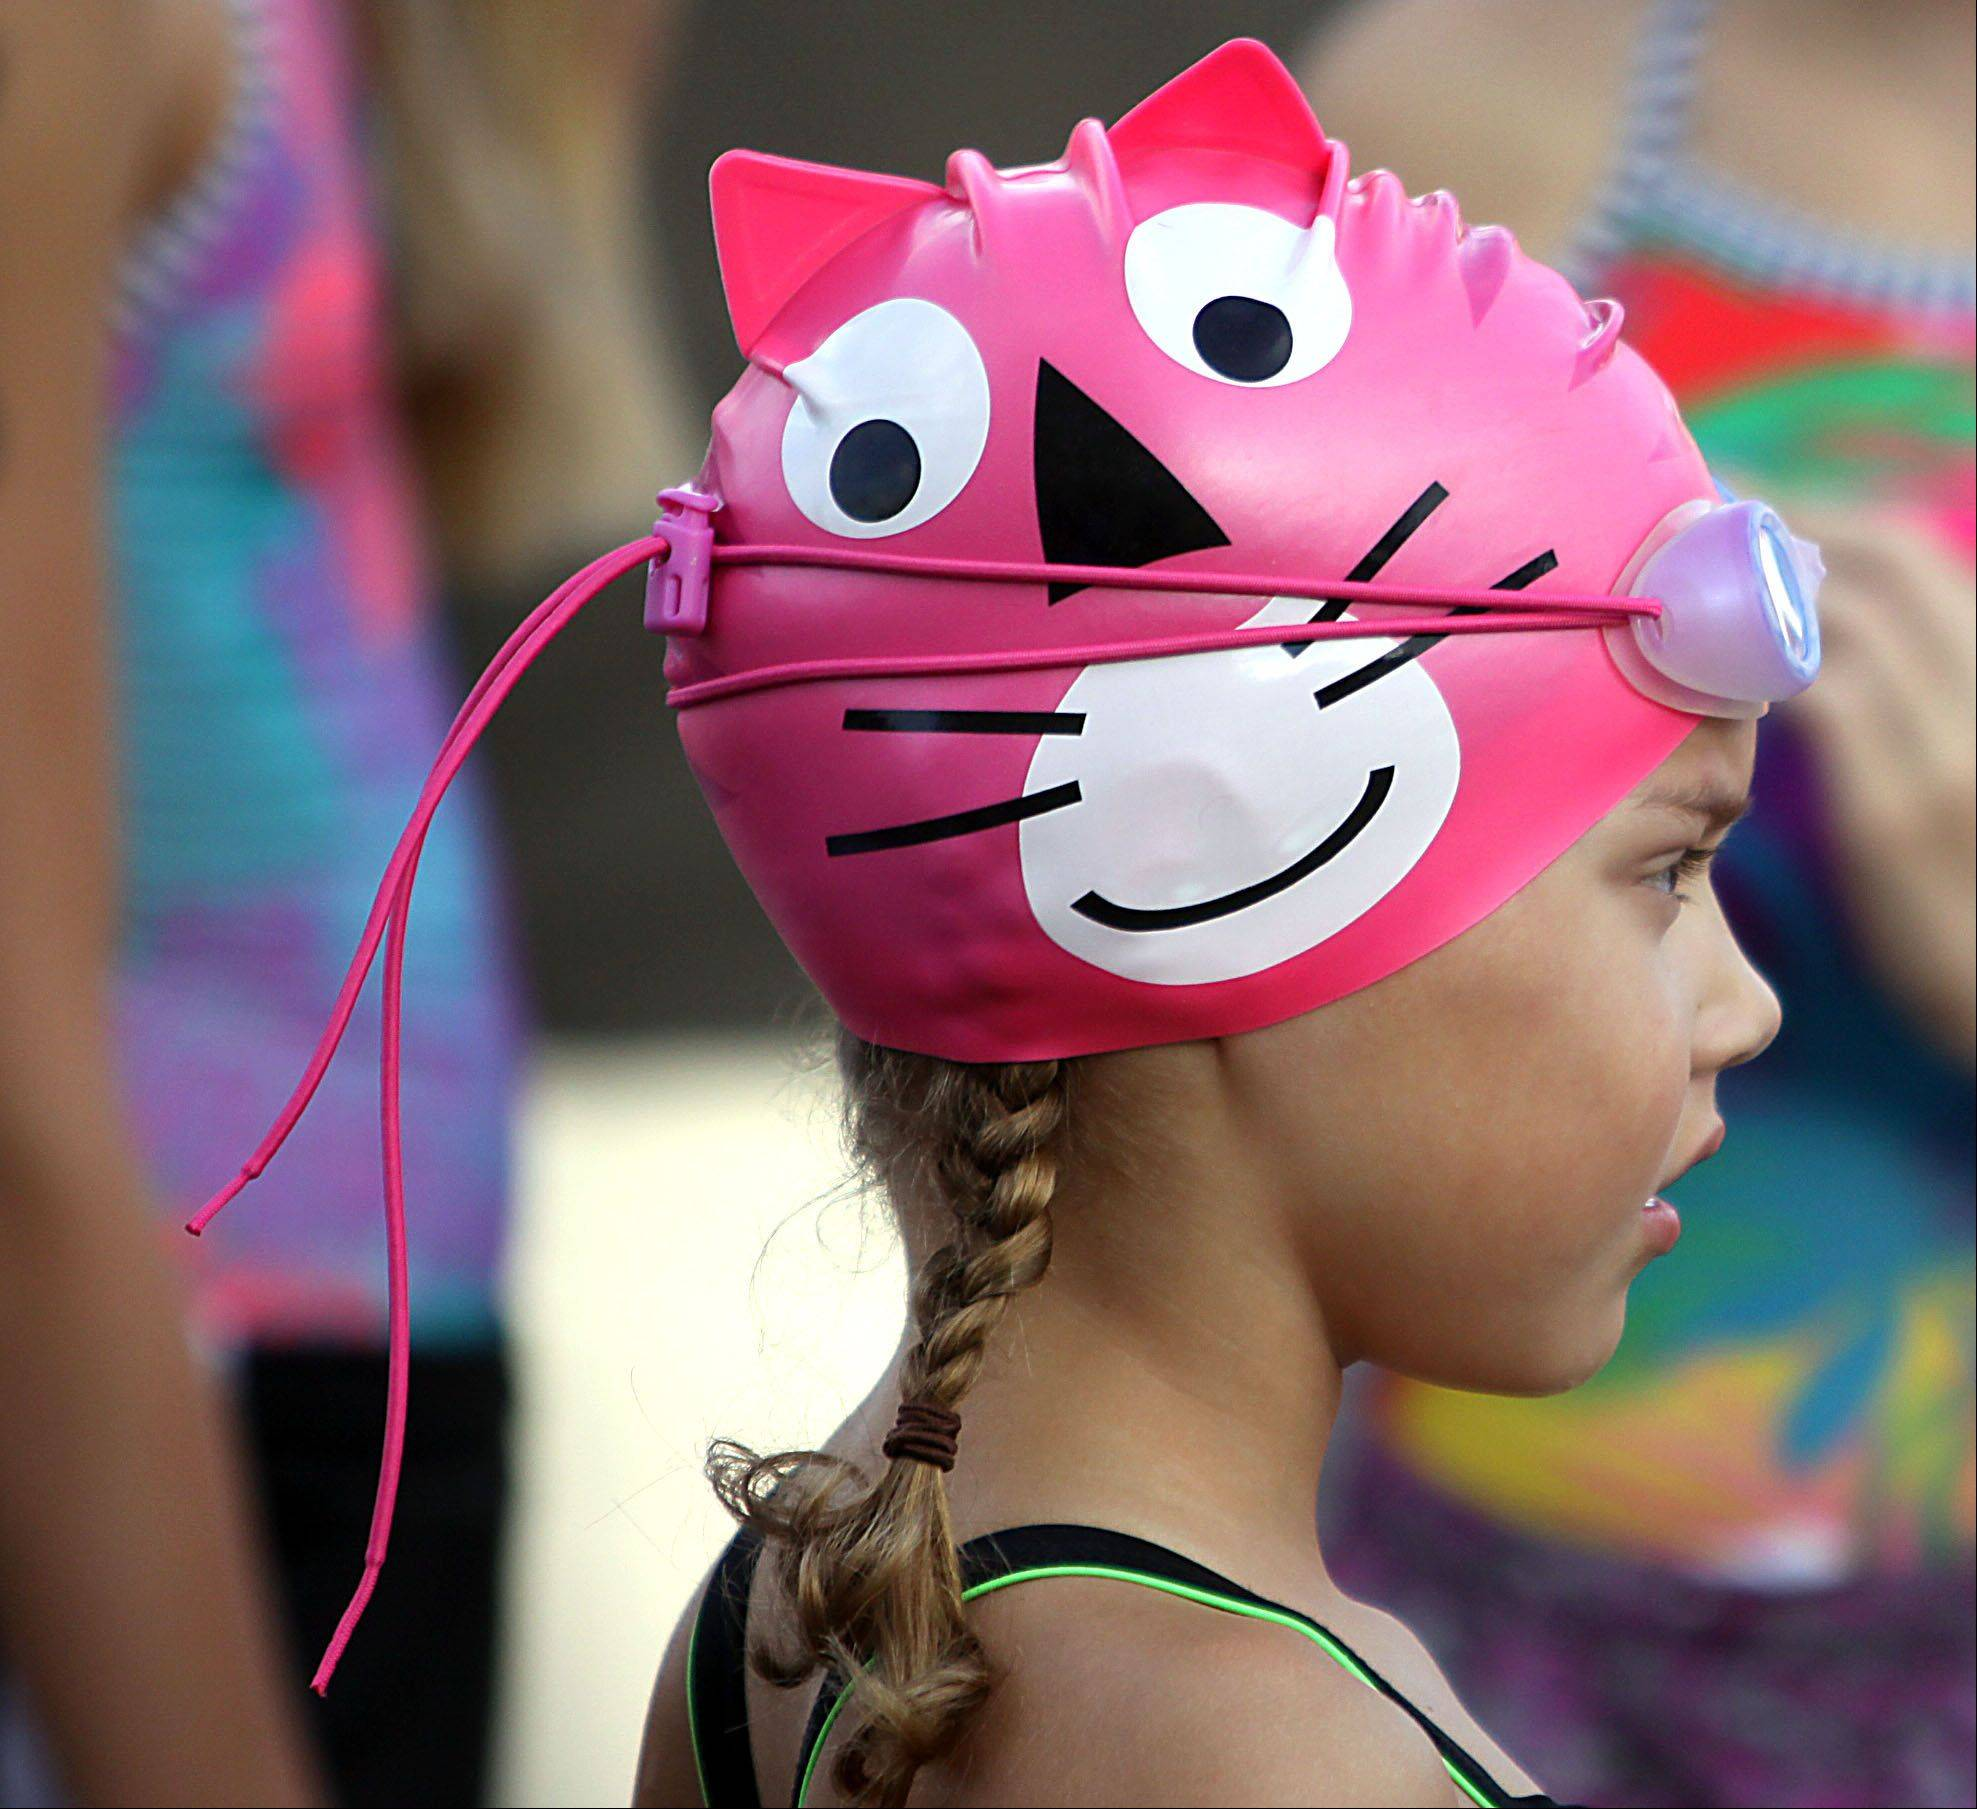 Makenna Cowhey, 7, of Geneva sports a kitty-themed swim cap for the Juniors event that was part of the MMTT Splash and Dash race at Cadence Fitness and Health Center in Geneva Wednesday night.